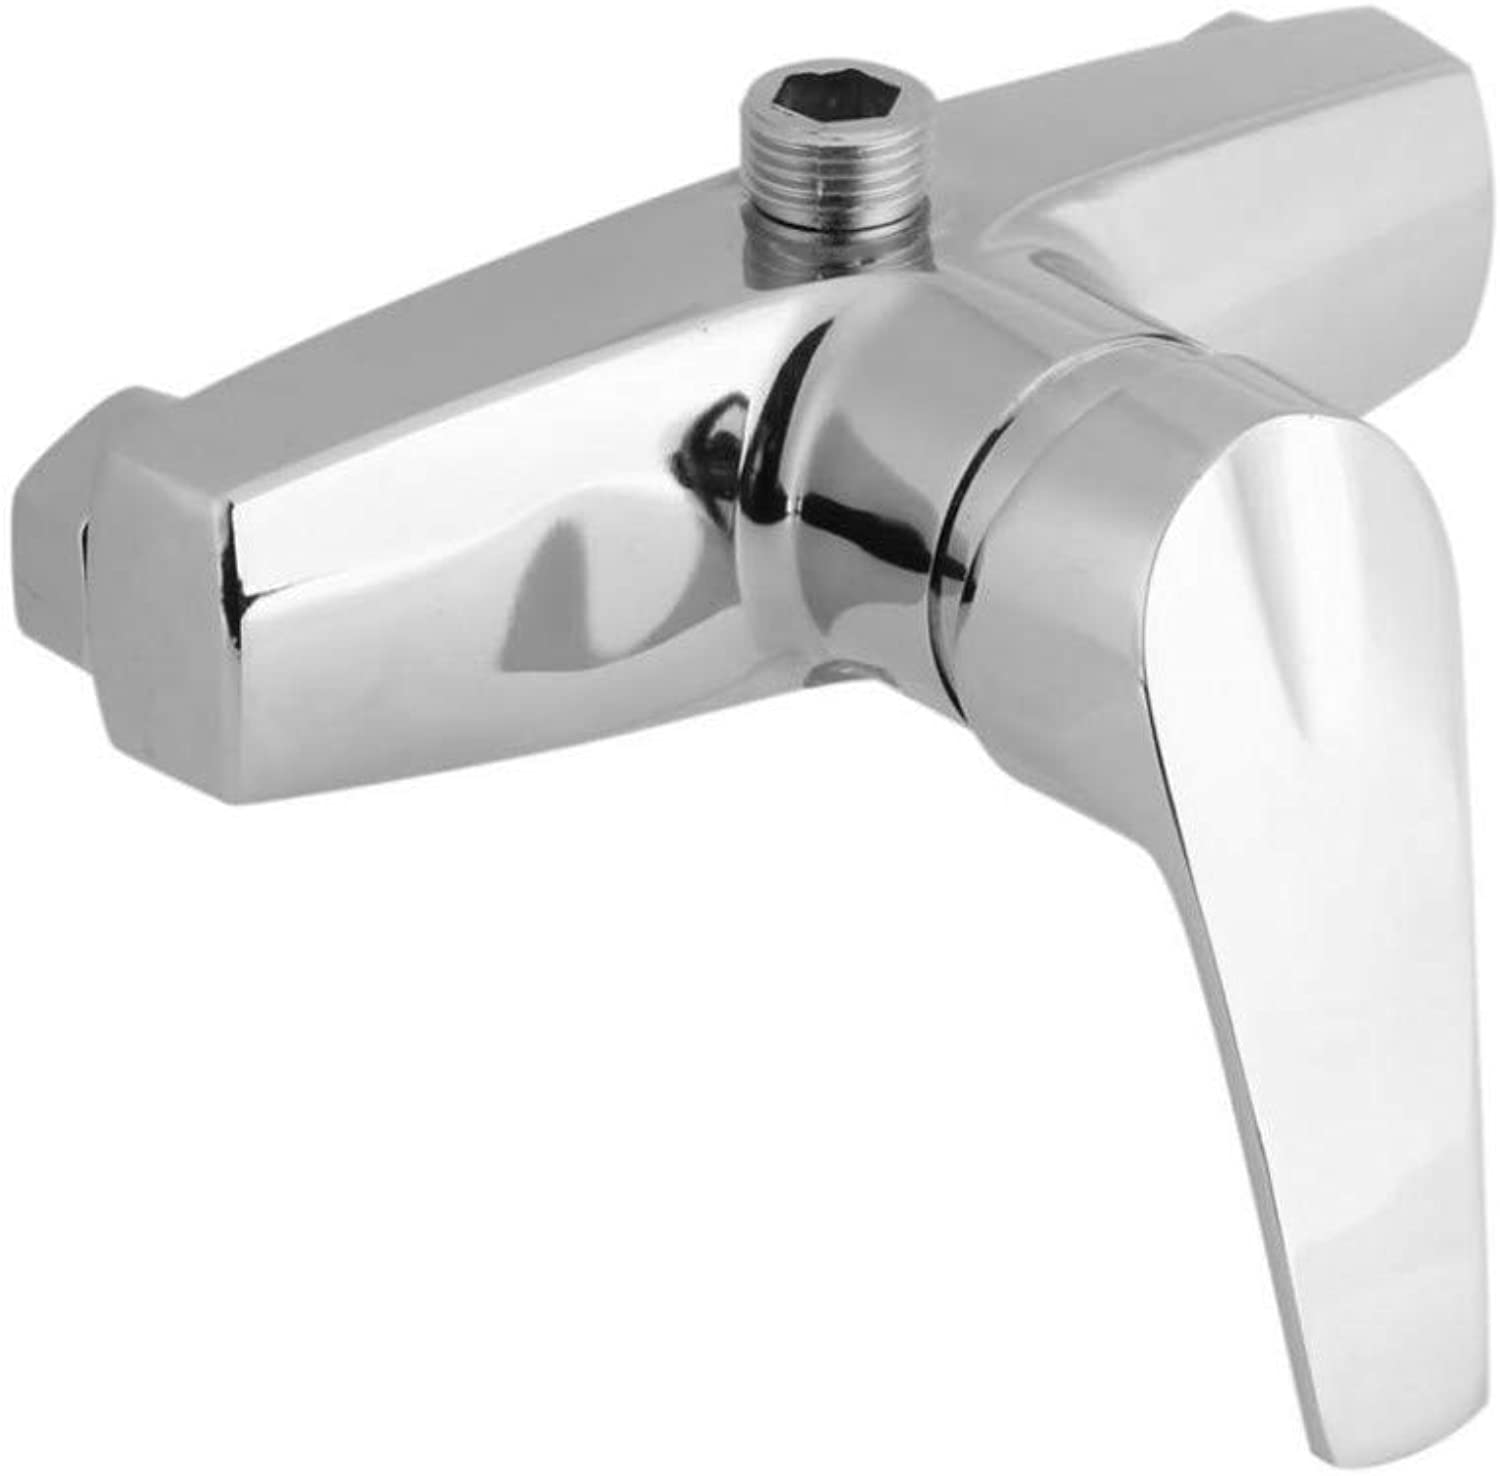 HELING Zinc Alloy Bathroom Bathtub Single Handle Faucet Wall Mounted Bath Shower Valve Mixer Tap